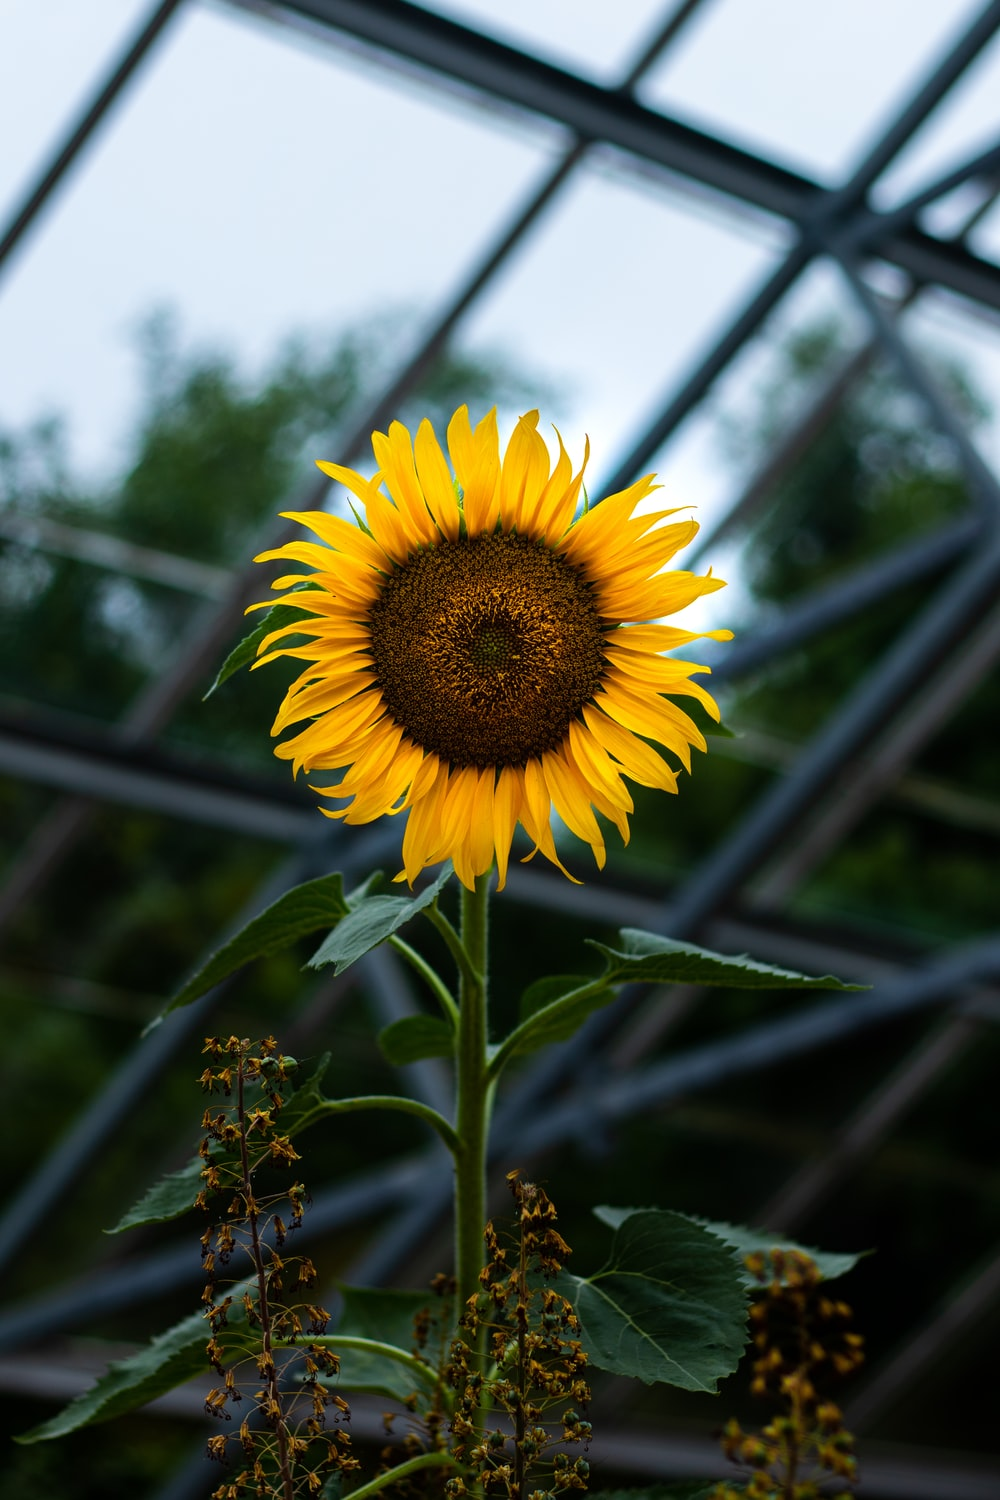 20 sunflower pictures hq download free images on unsplash